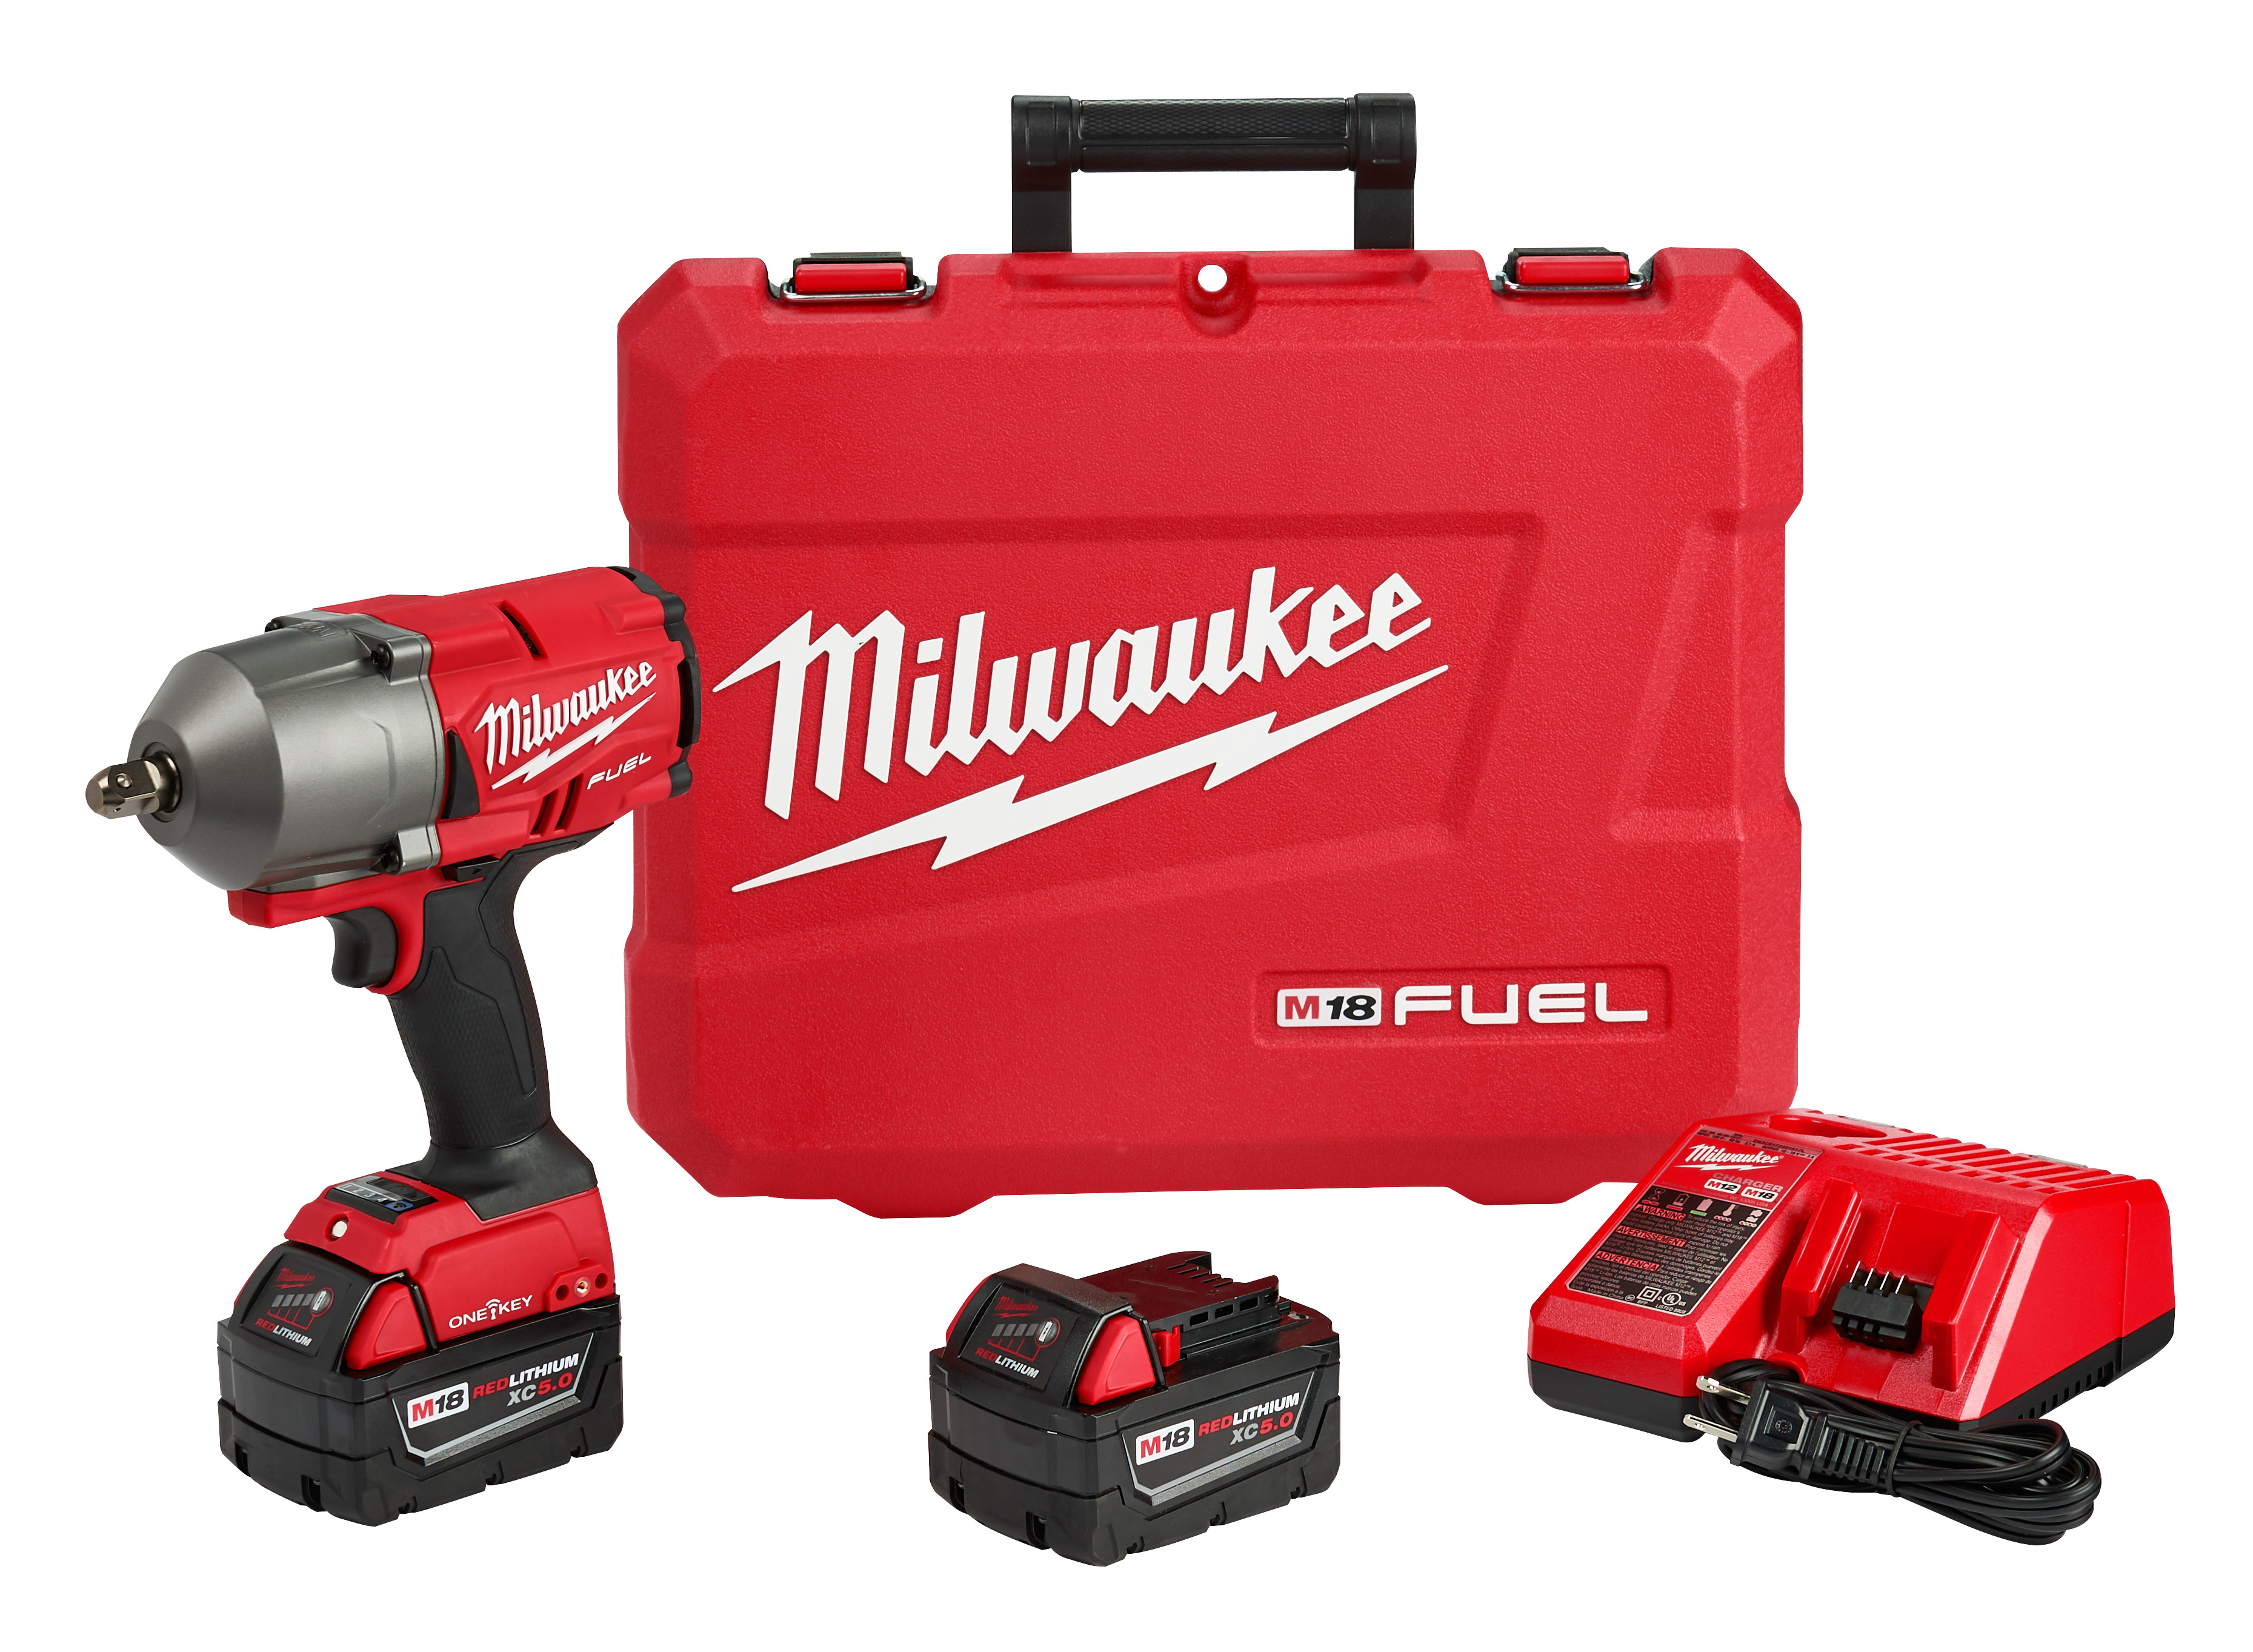 Milwaukee® M18™ FUEL™ ONE-KEY® 2862-22 Cordless High Torque Impact Wrench, 1/2 in 4-Mode Straight Drive, 2400 bpm, 750/1100 ft-lb Torque, 18 VDC, 8-1/8 in OAL